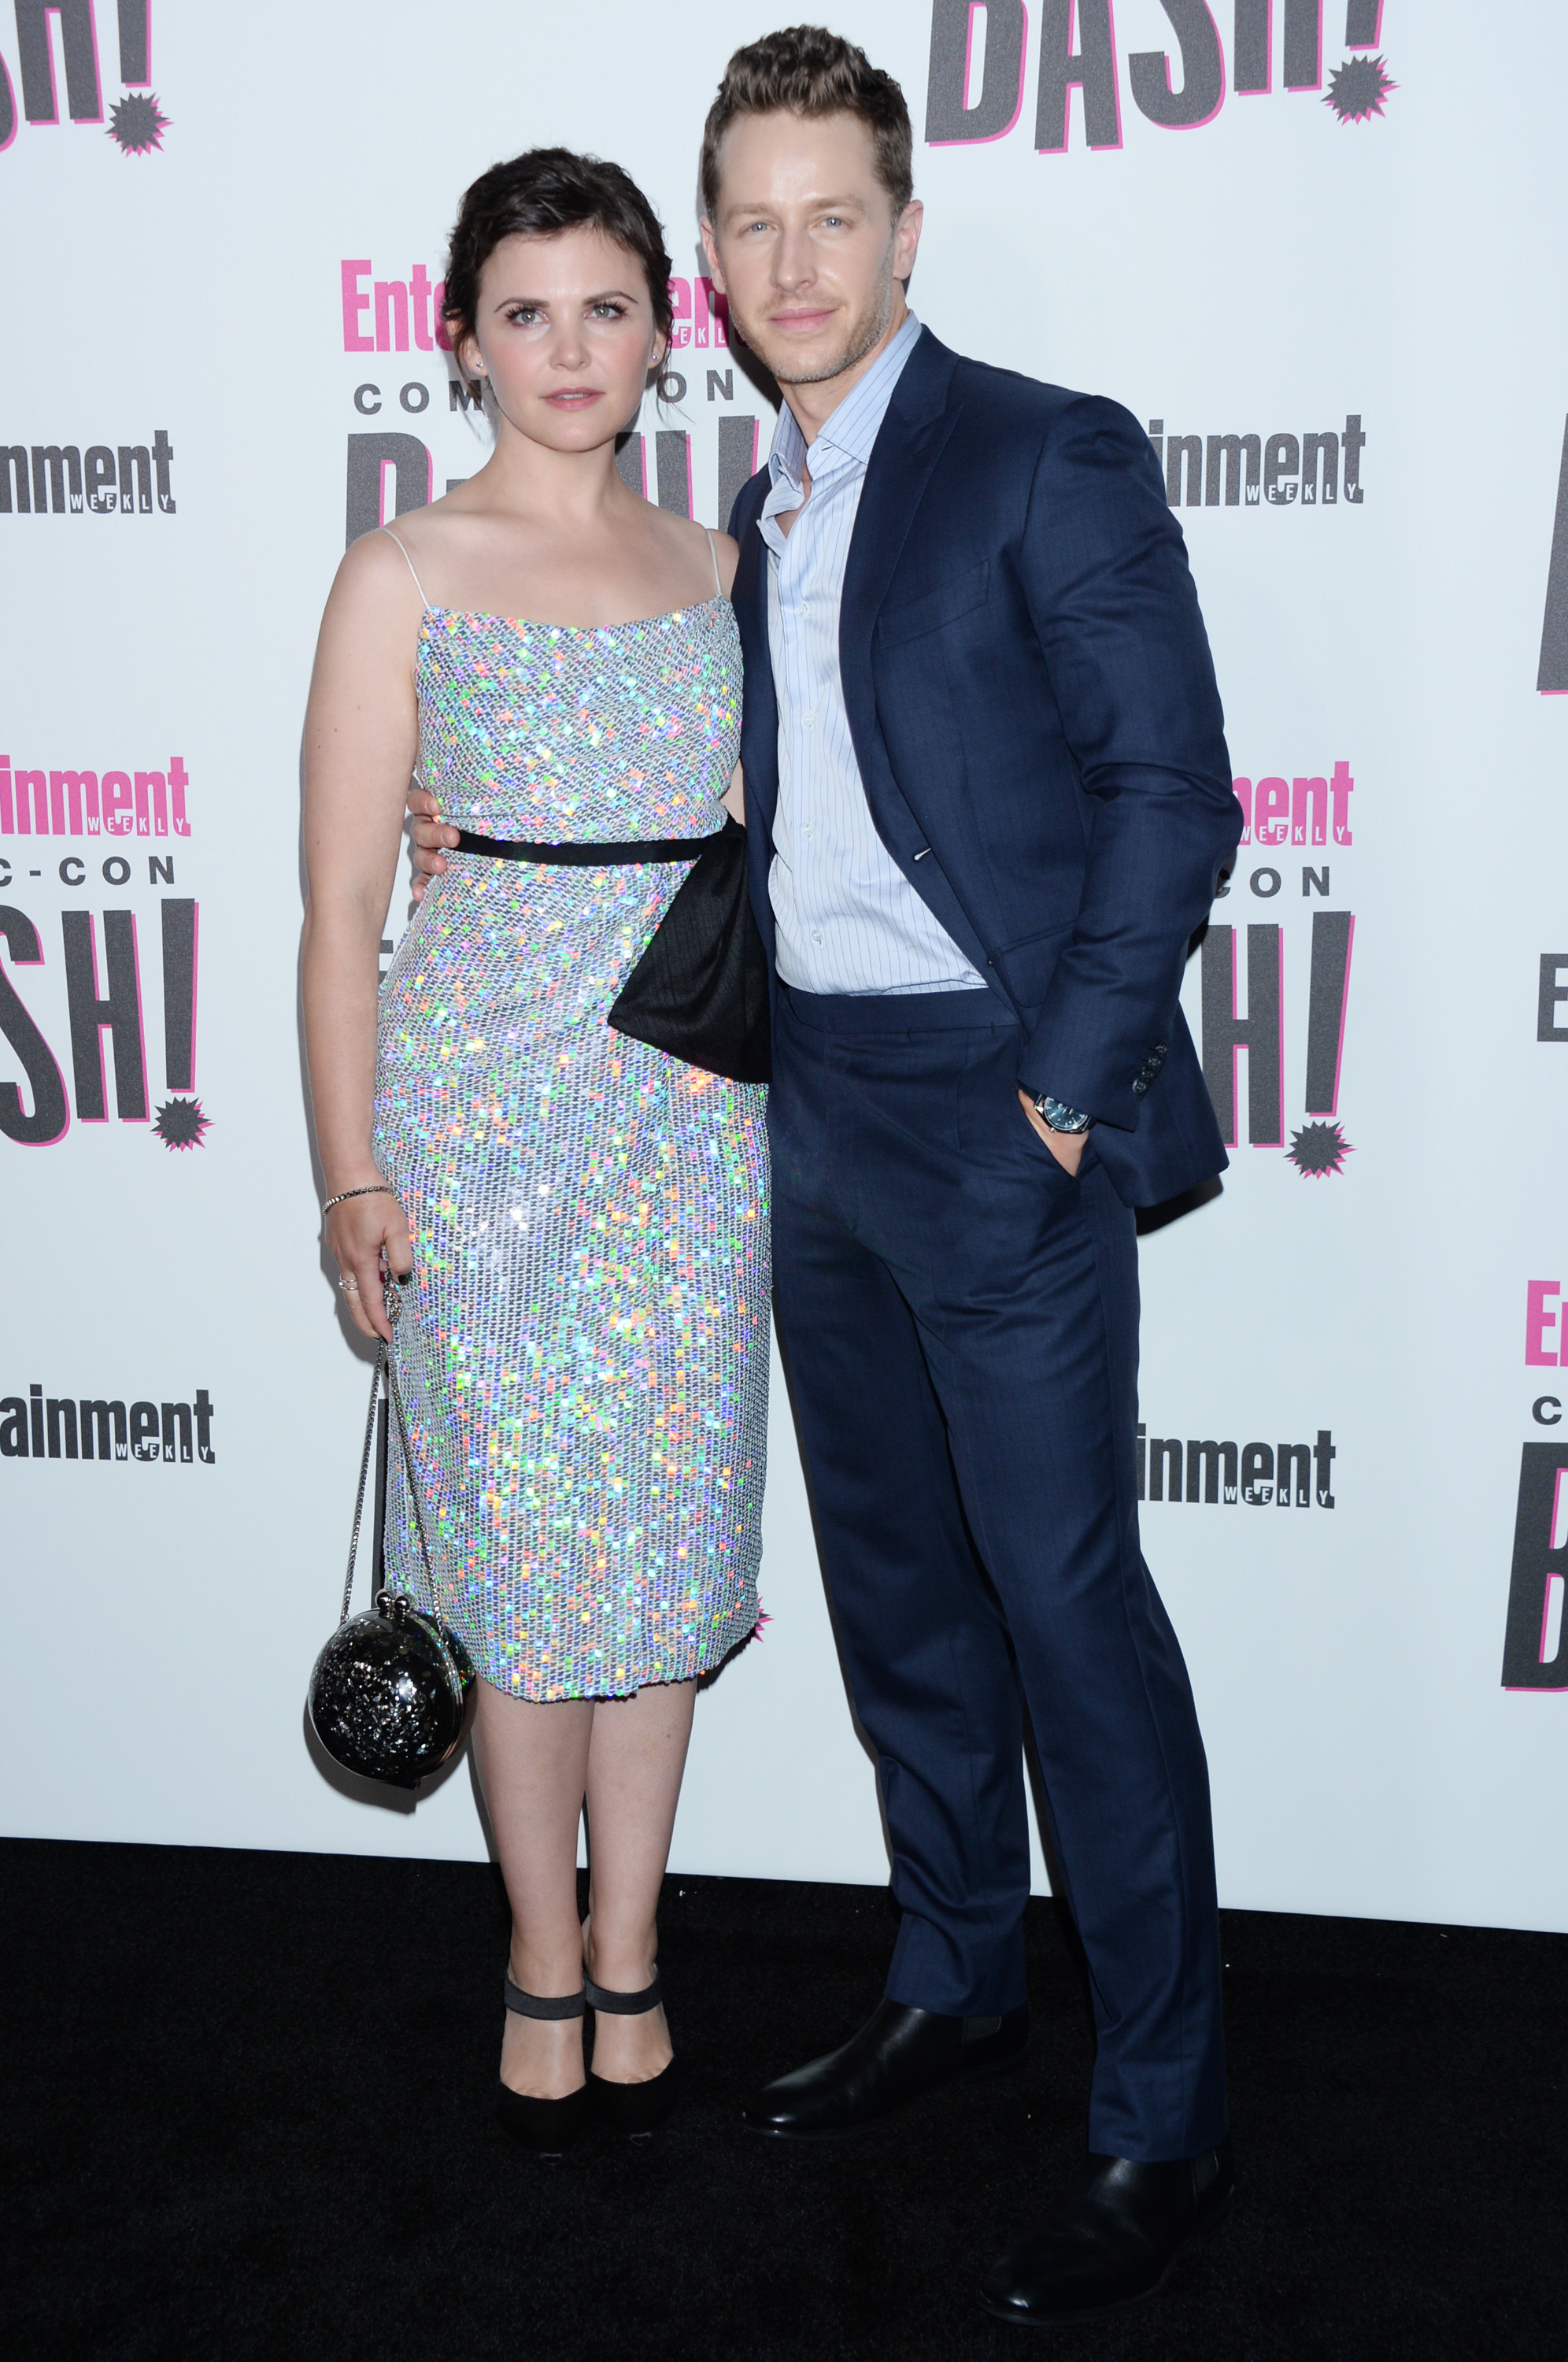 Ginnifer Goodwin and husband Josh Dallas attend the Entertainment Weekly party at Comic Con International in San Diego on July 21, 2018.